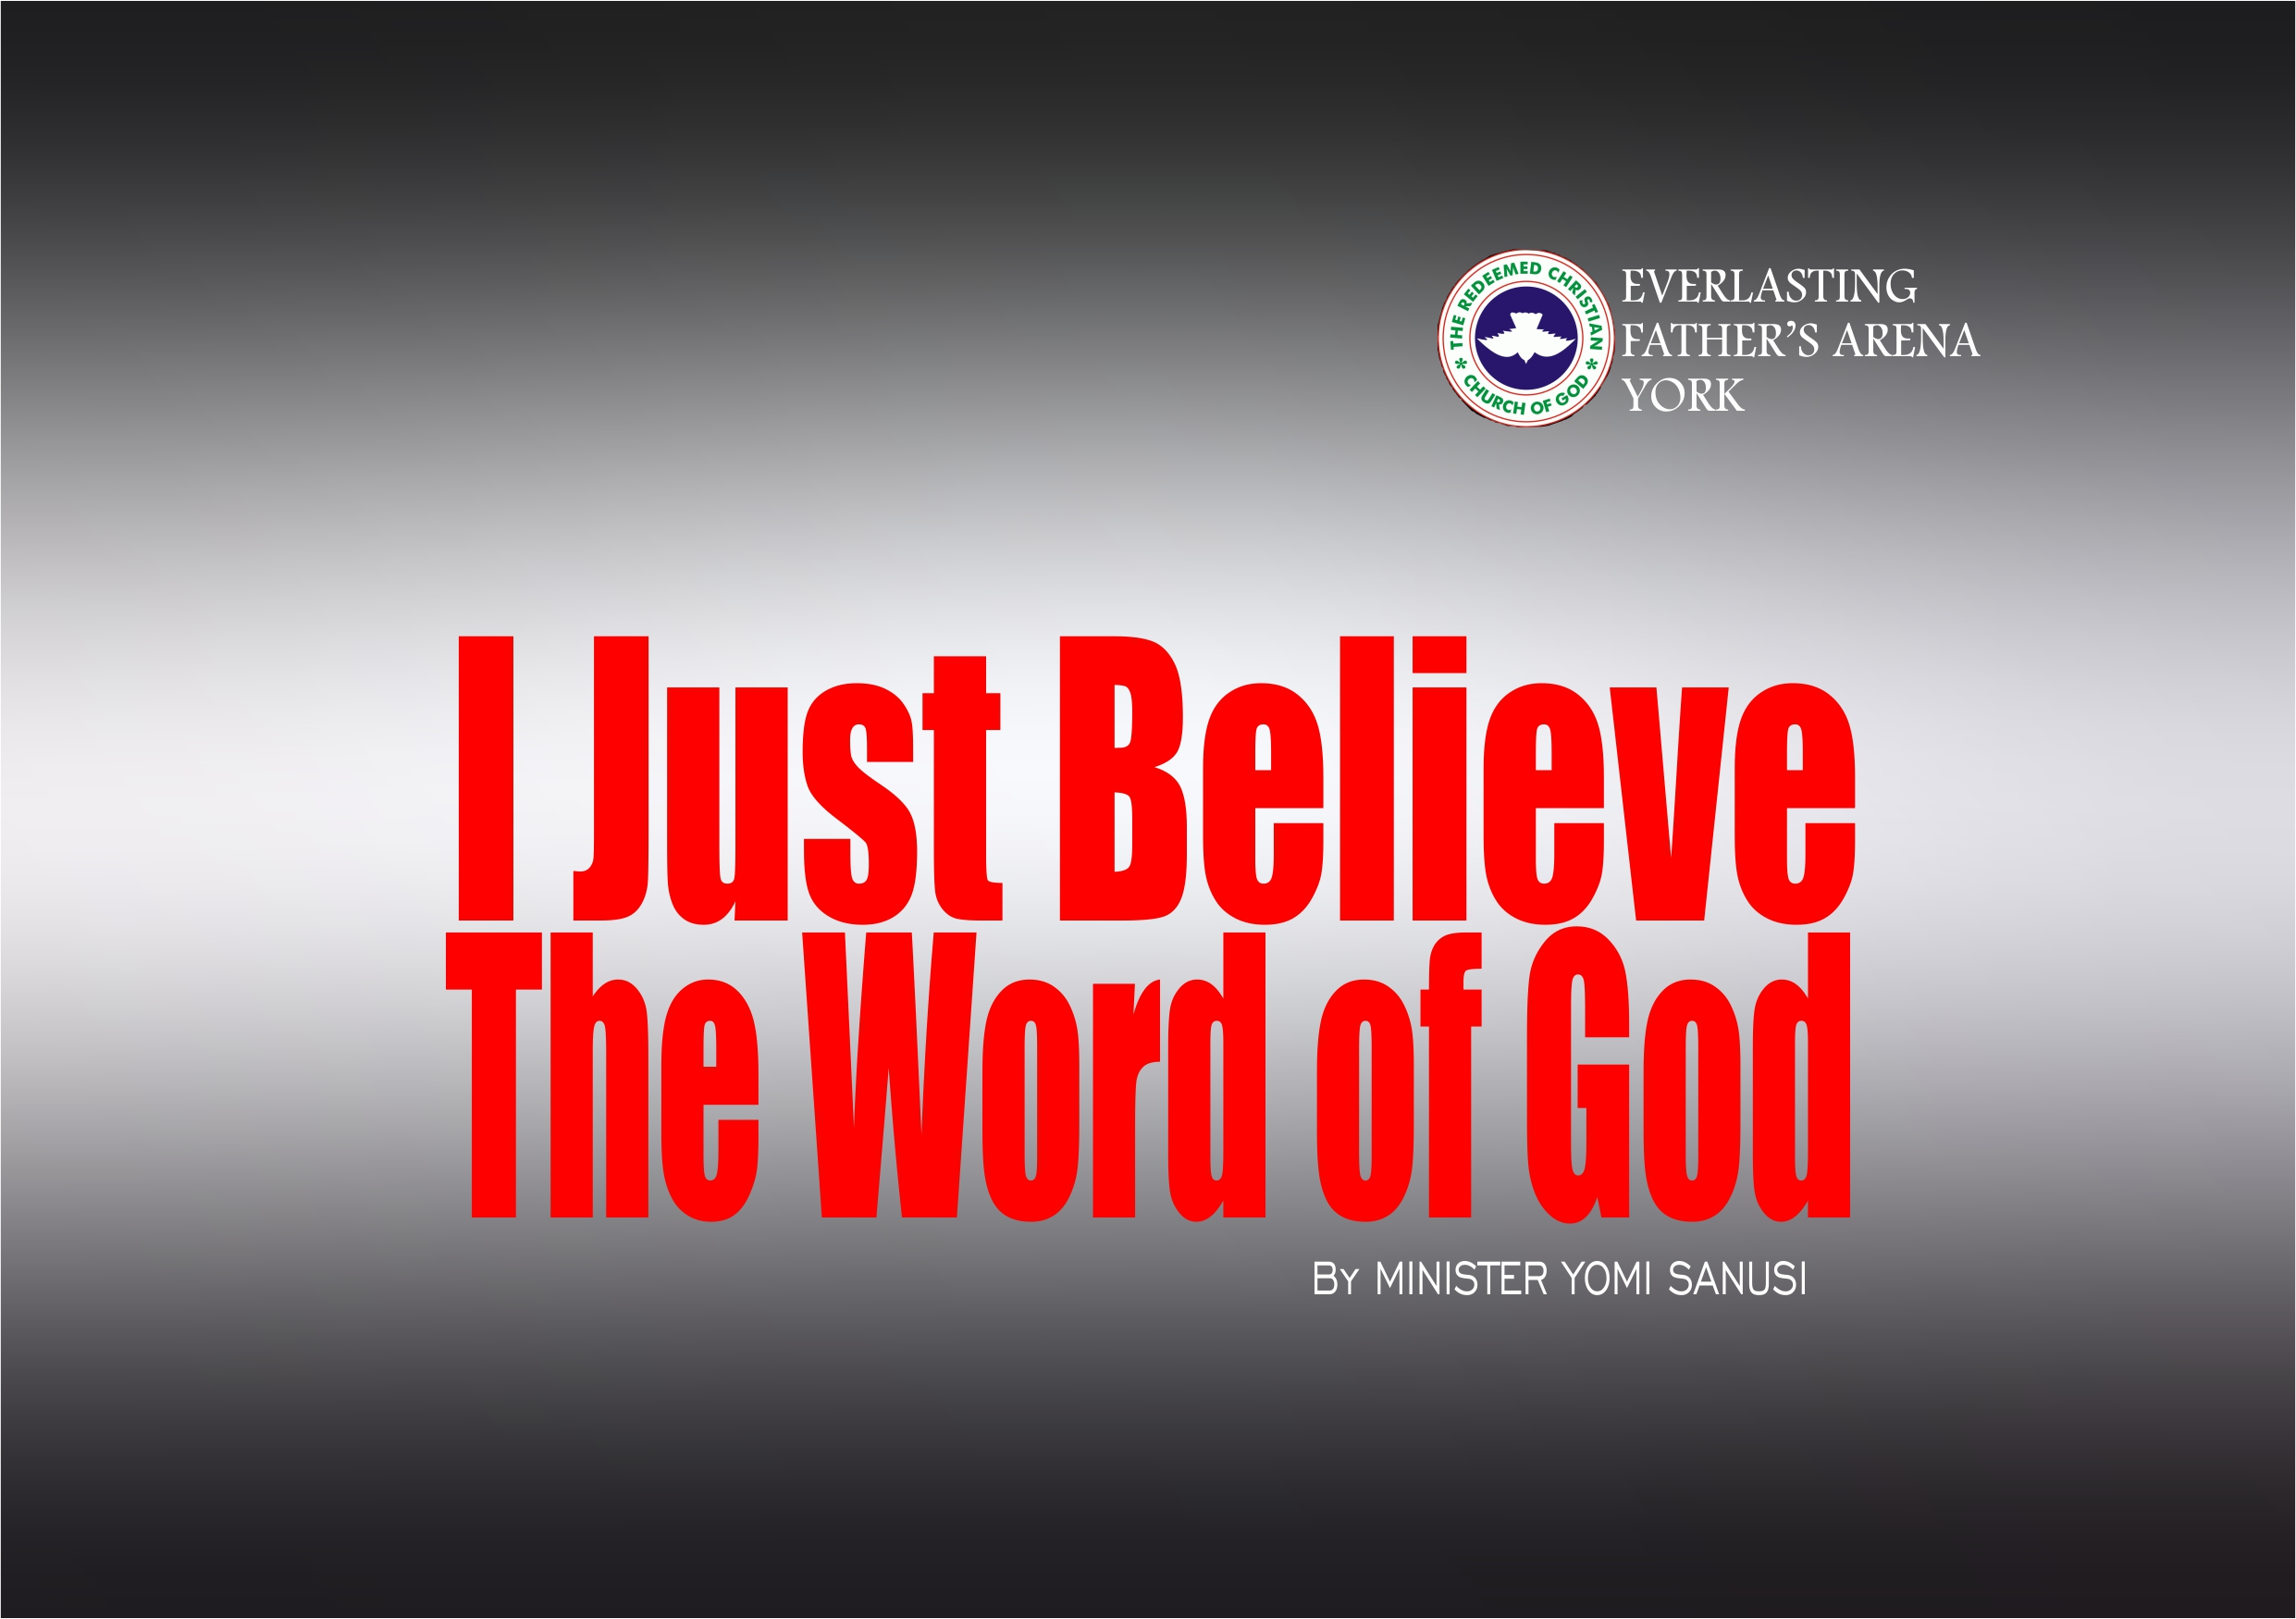 I Just Believe The Word of God, by Minister Yomi Sanusi